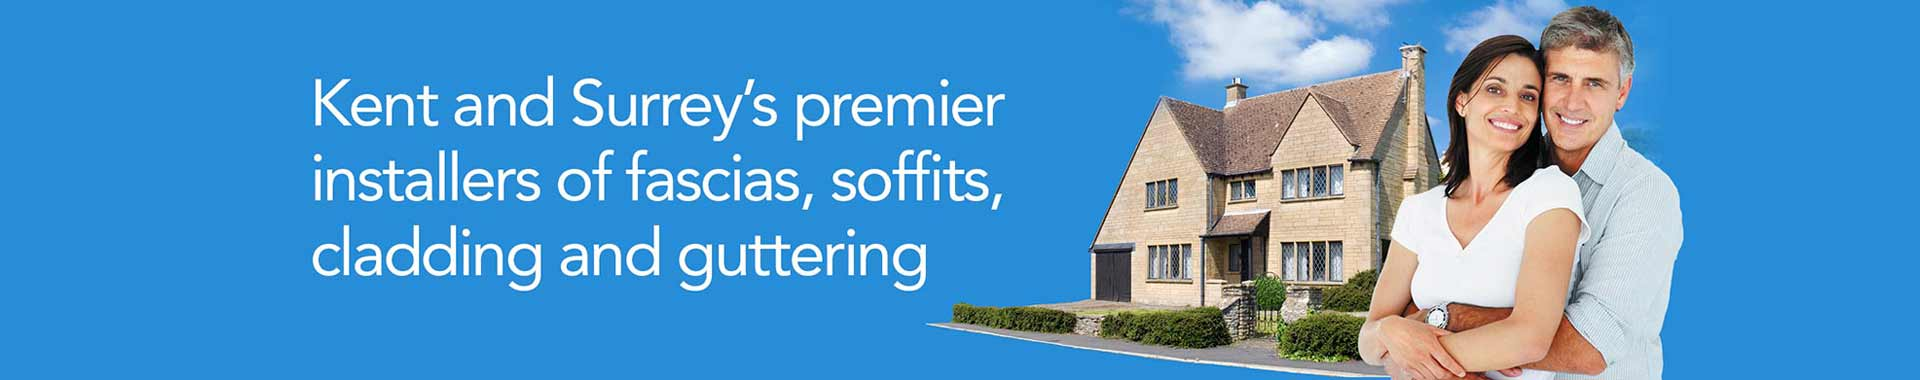 Kent and Surrey's premier installers of fascias, soffits, cladding and guttering